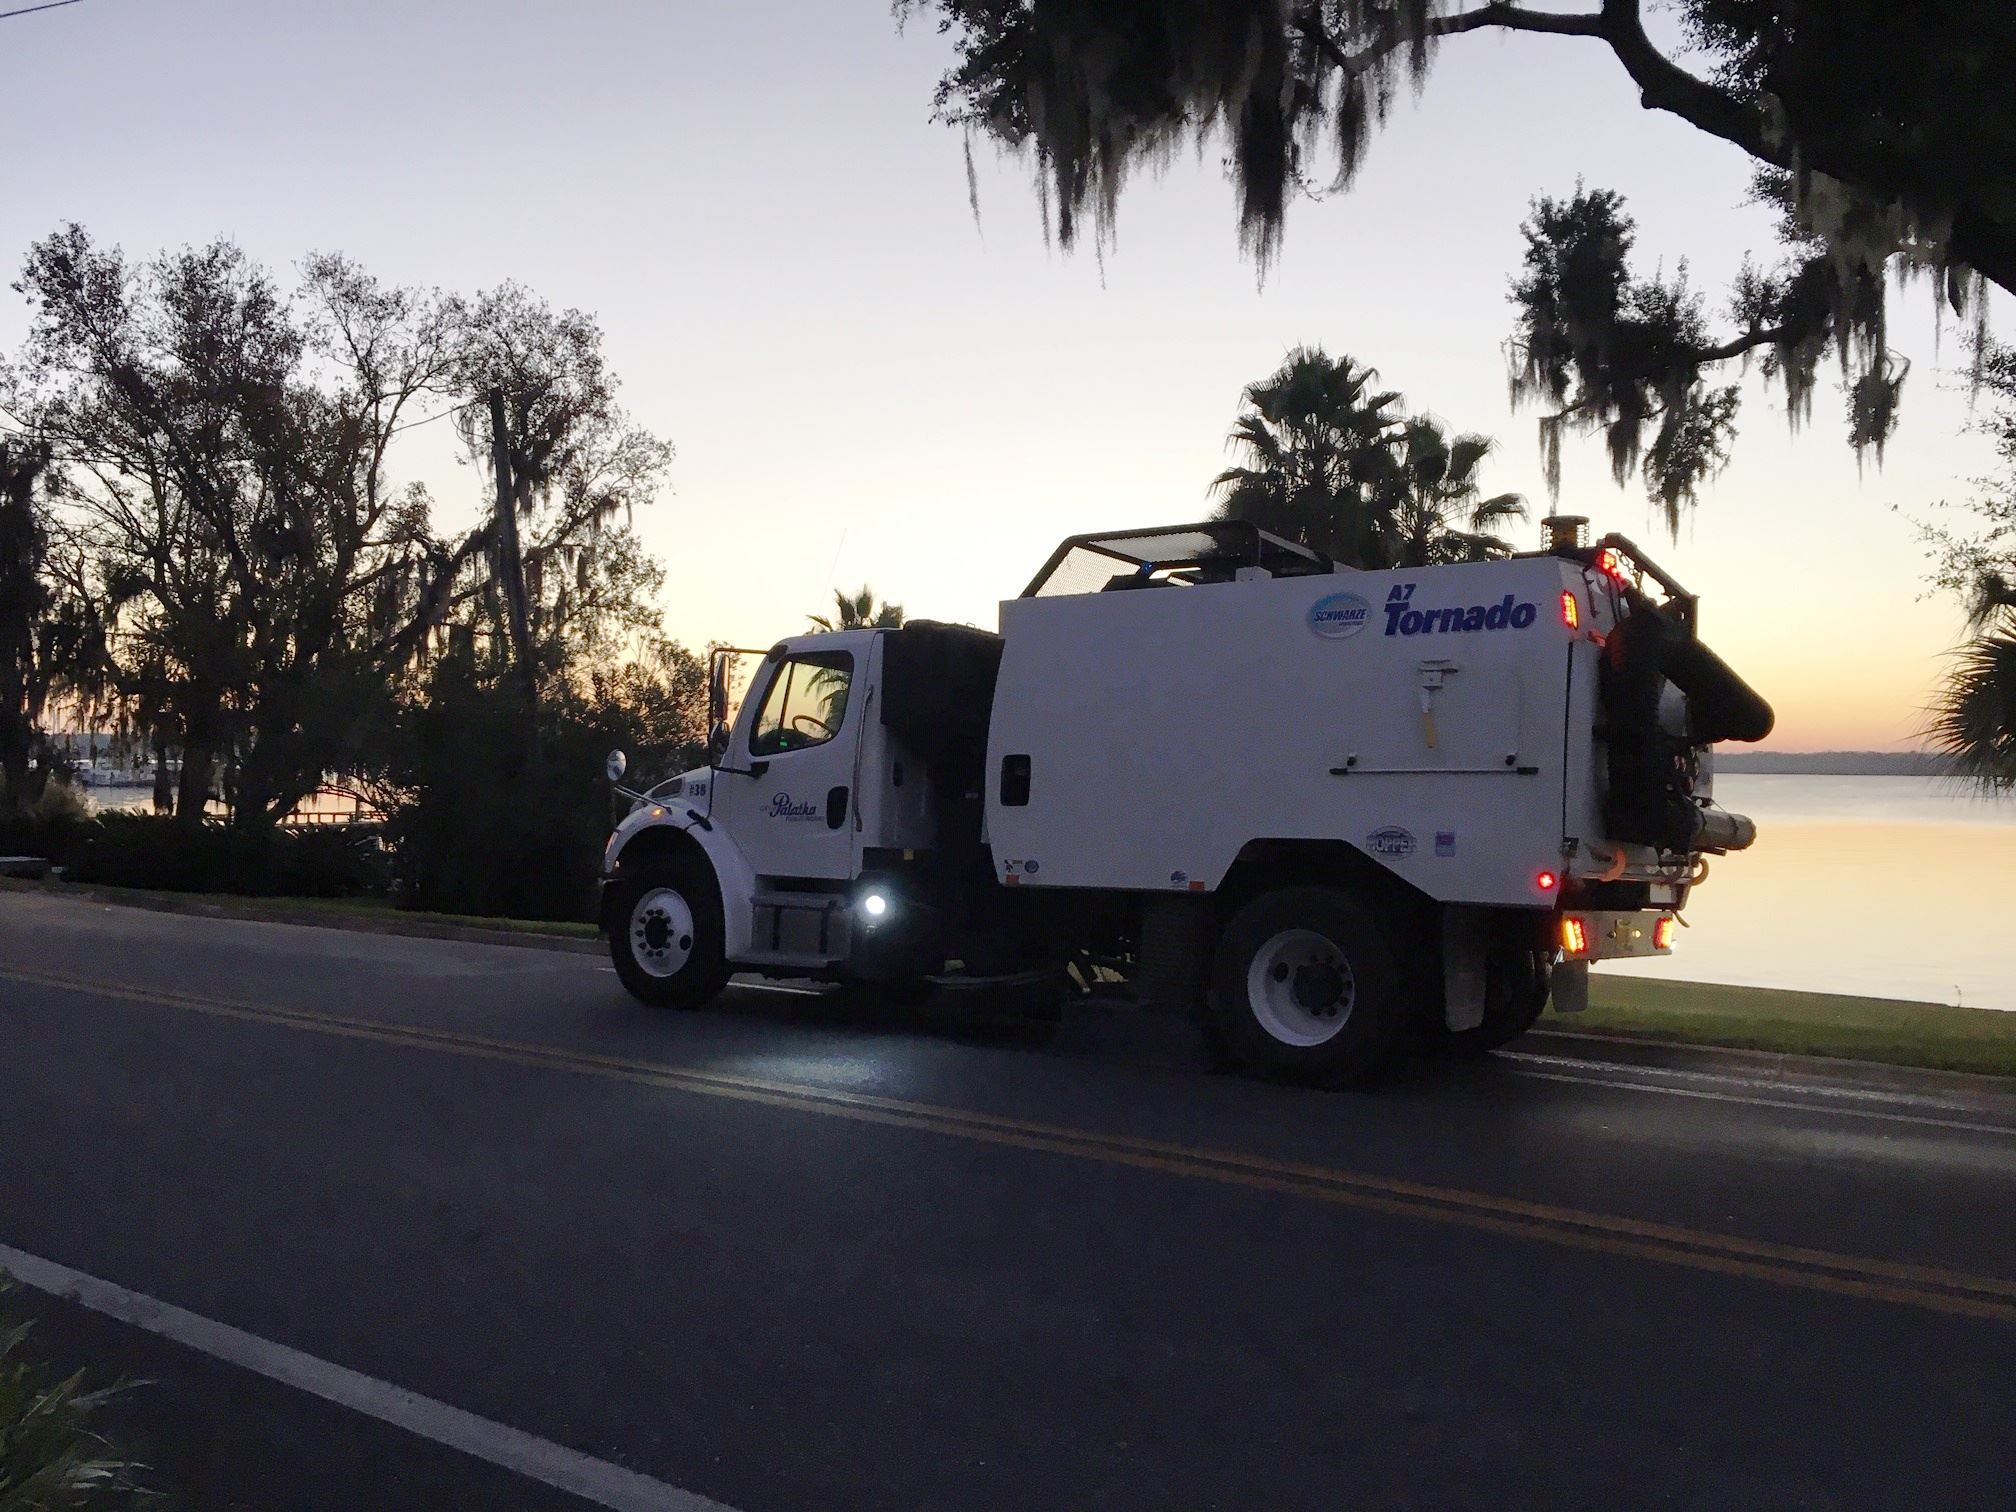 Street Sweeping on River Street